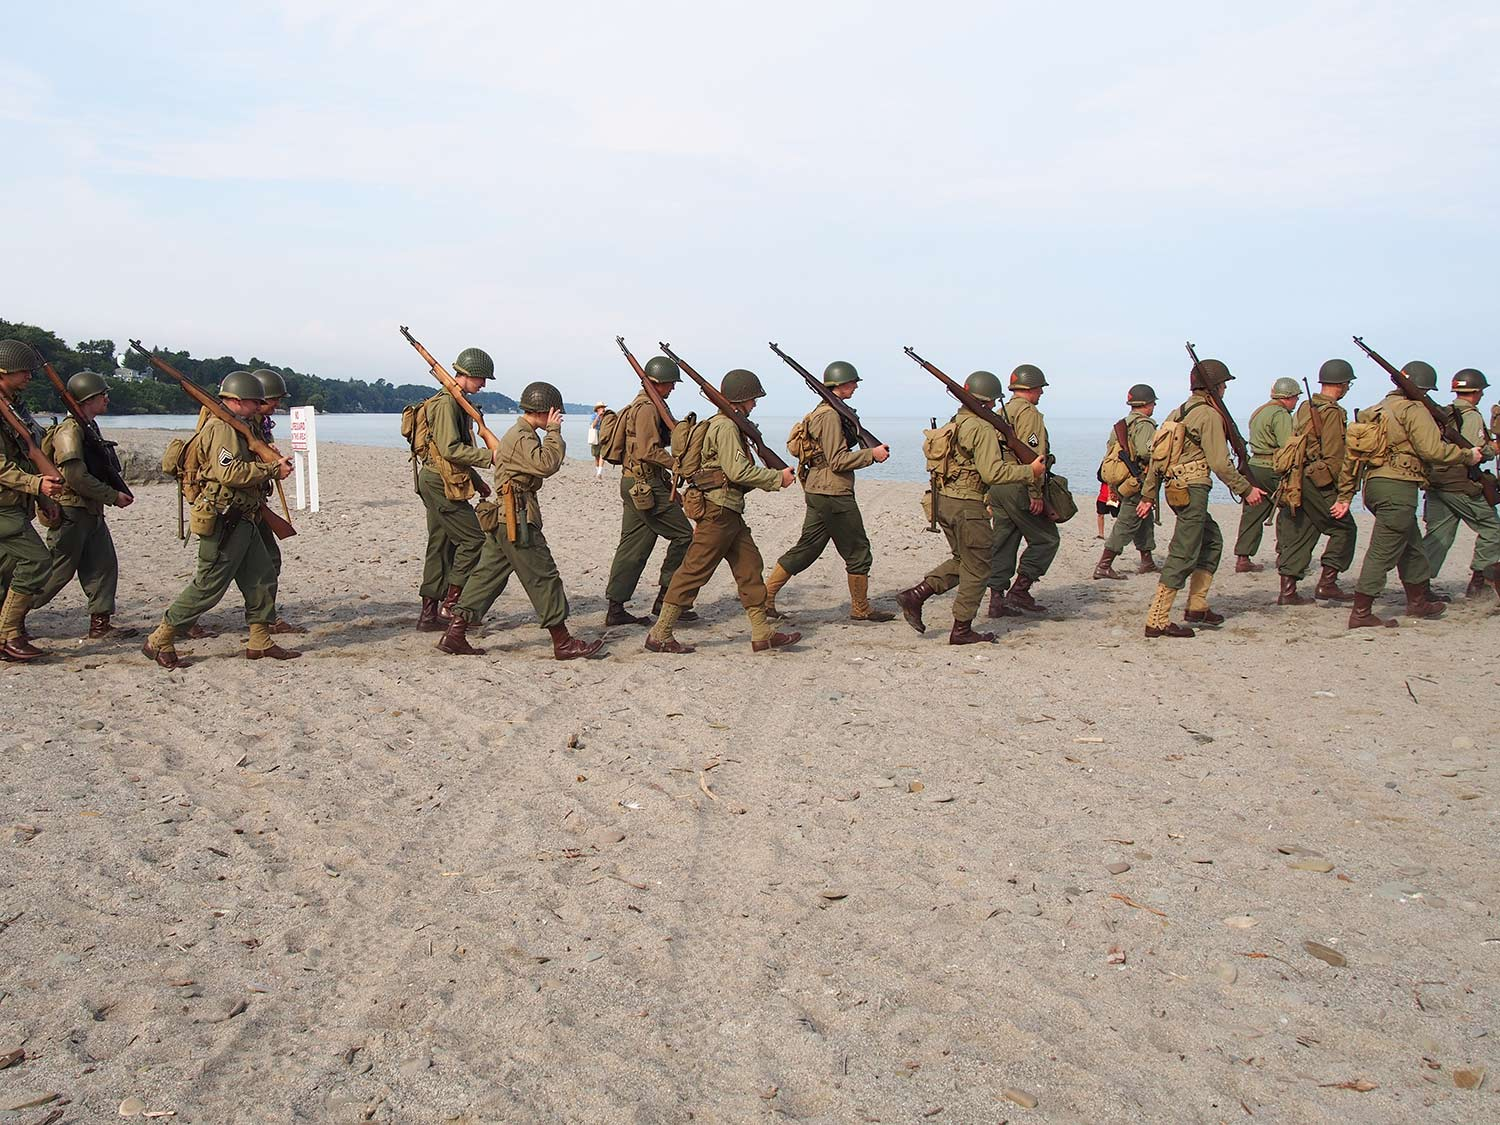 Invasion Ohio: Attending the Biggest Annual D-Day Reenactment